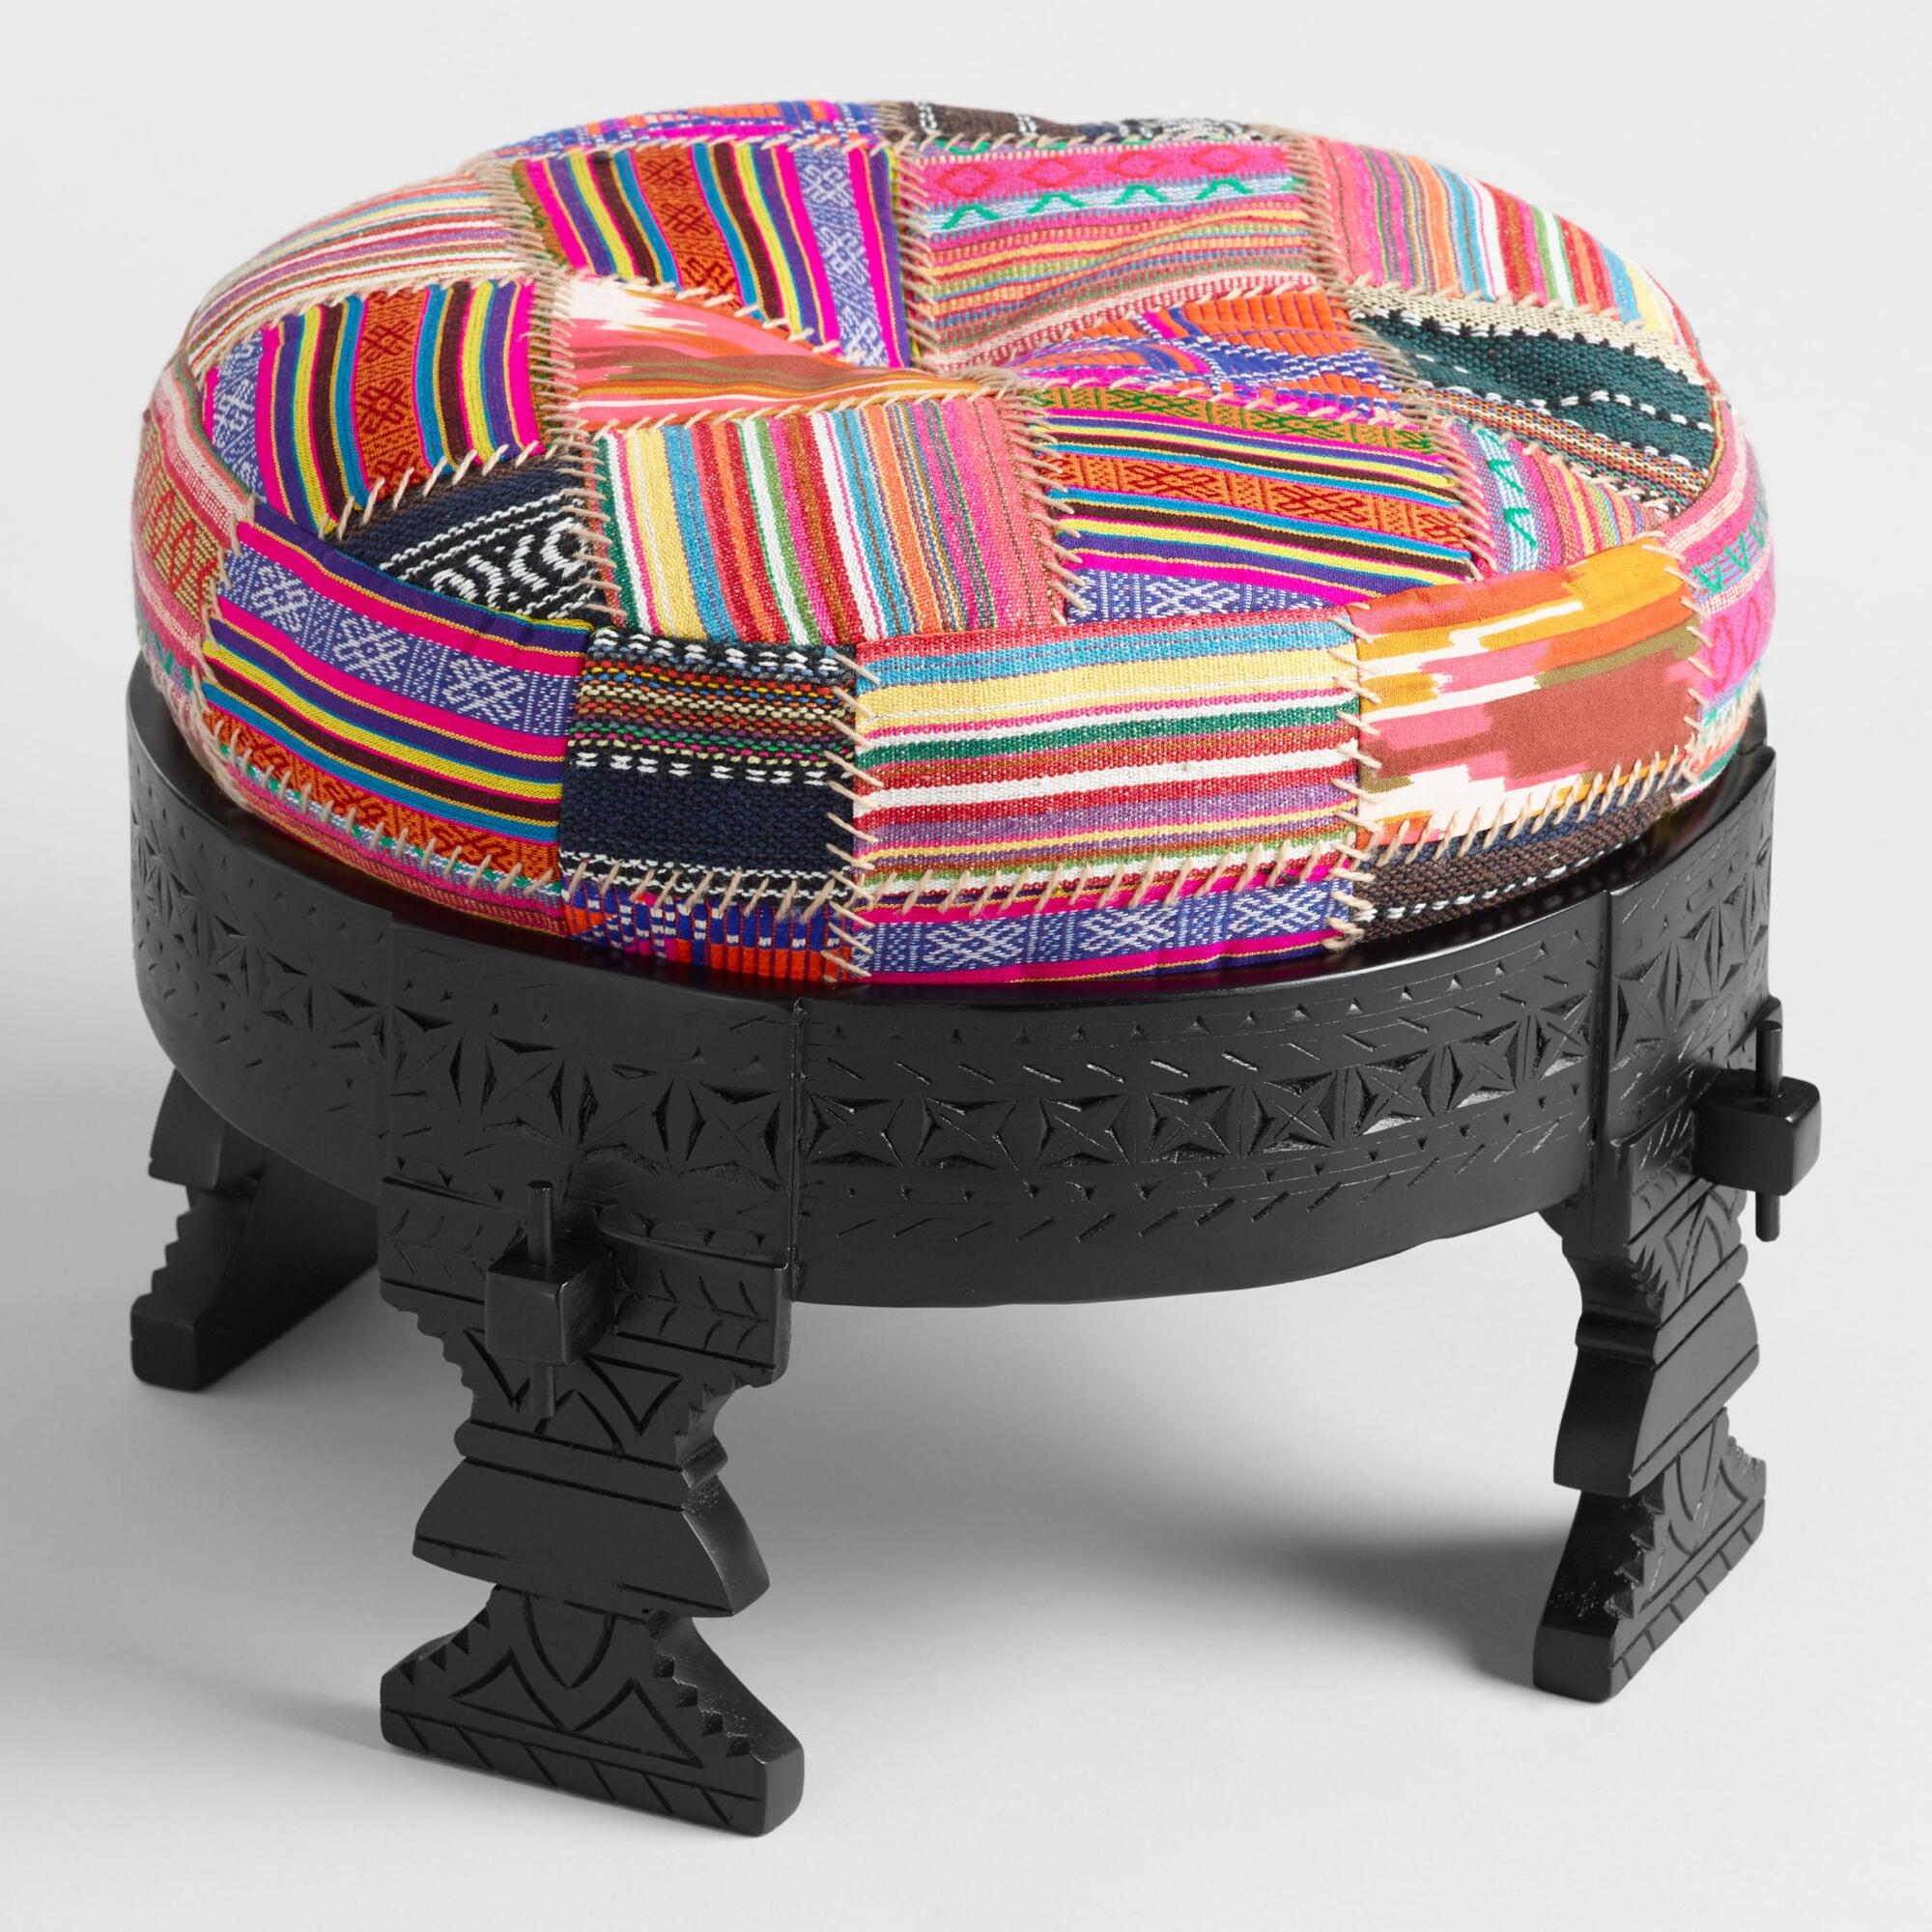 Black Bajot Stool With Pouf - Fabric  by World Market